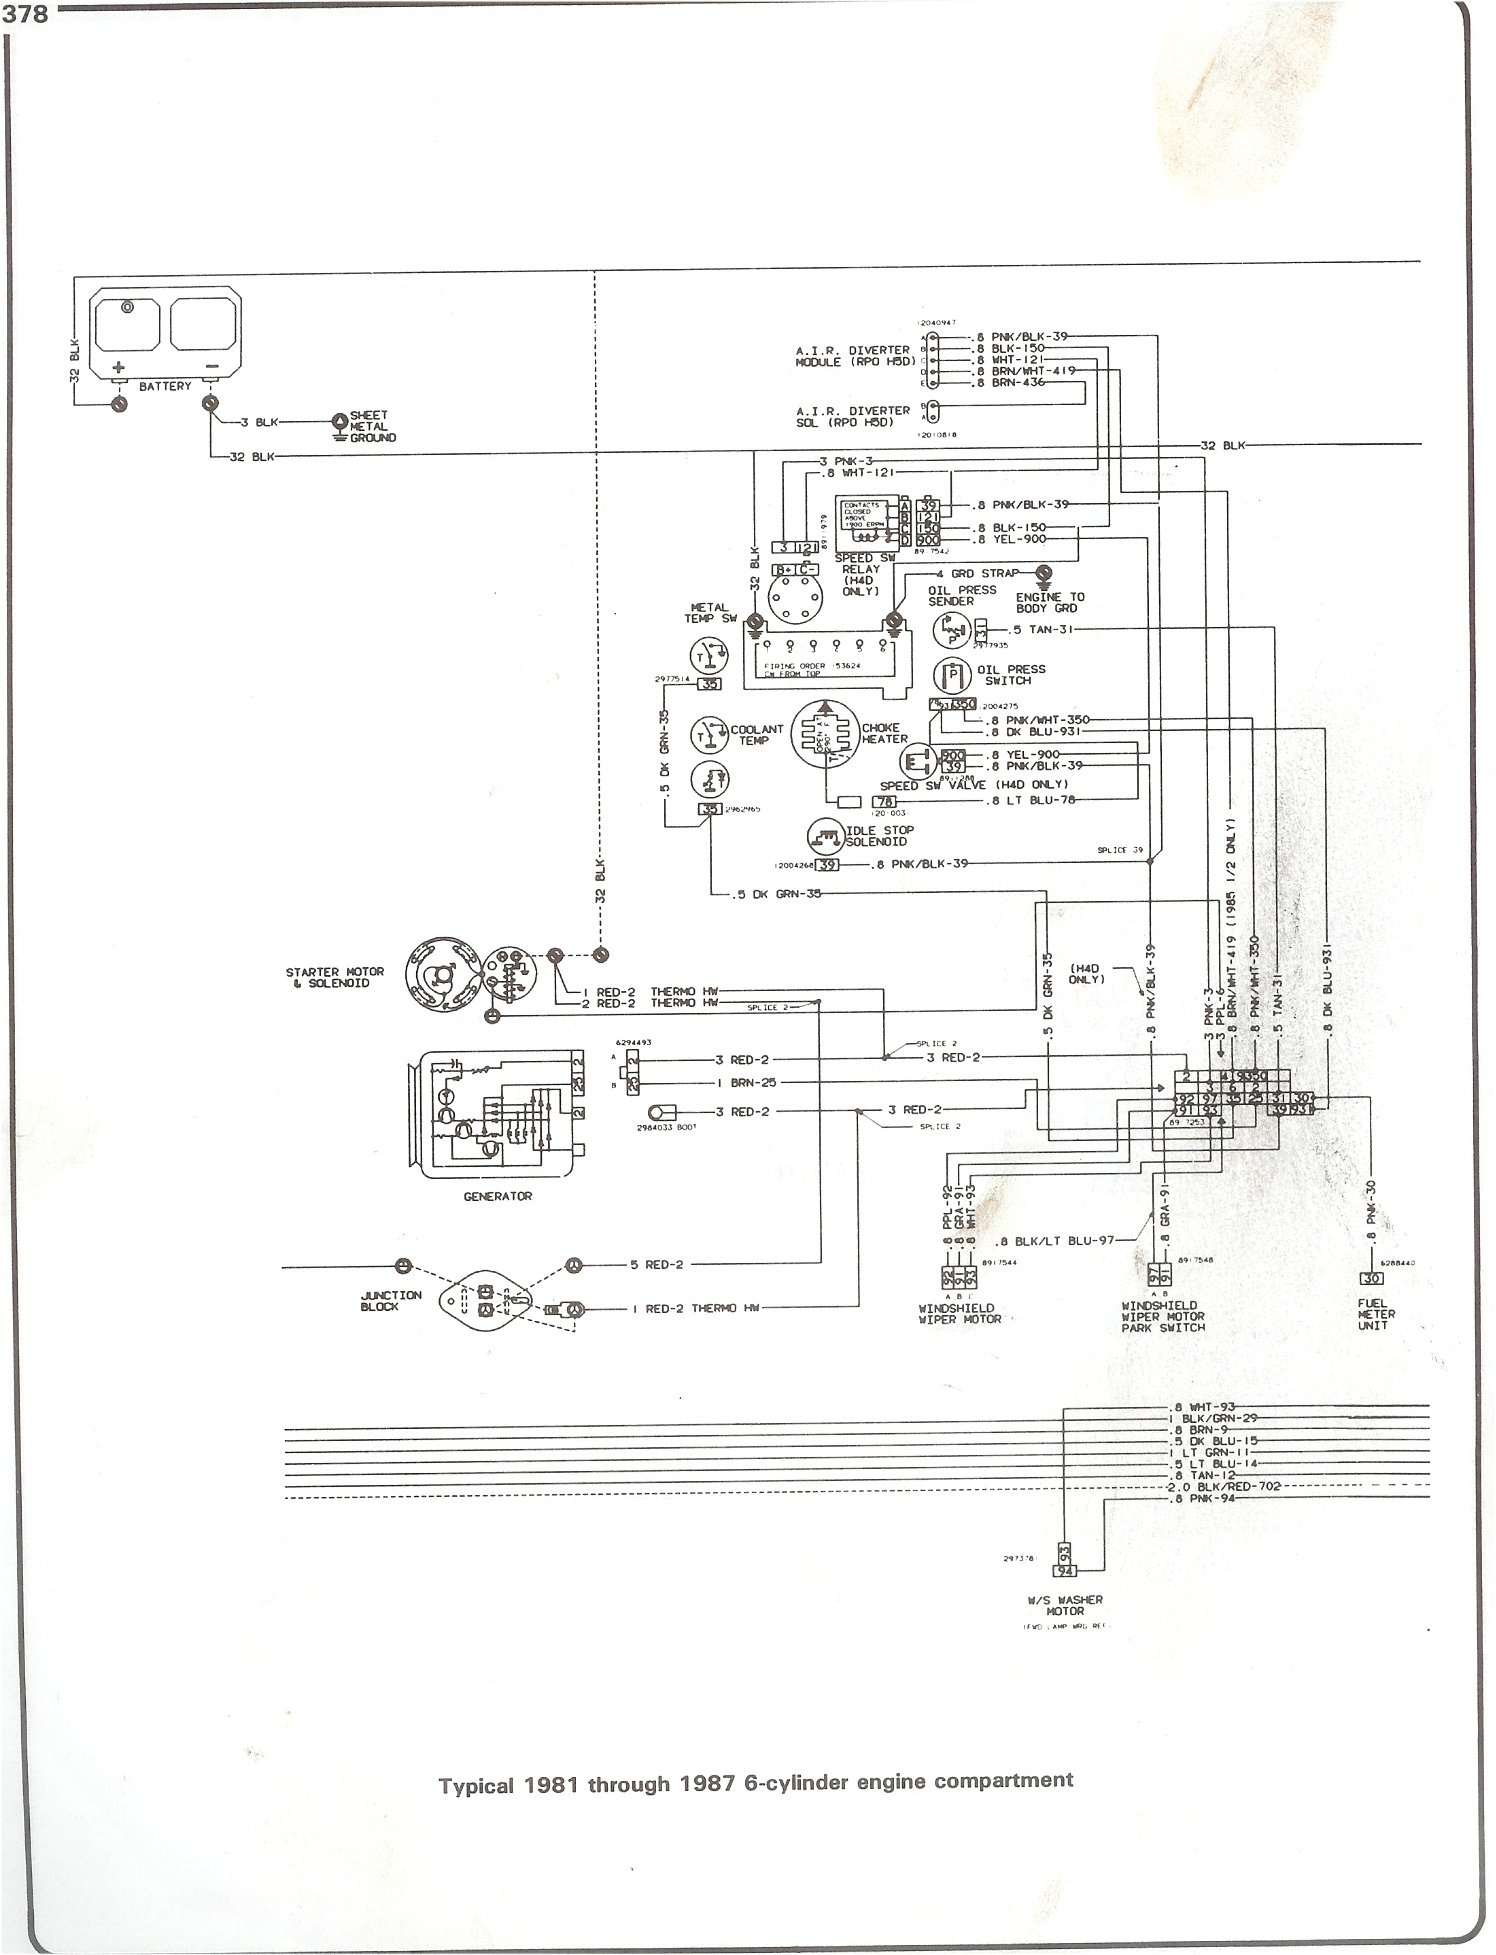 1969 Corvette Dash Wiring Diagram On 1973 Camaro Fuse Box Diagram GMC Fuse  Box Diagrams 1973 Camaro Fuse Block Diagram